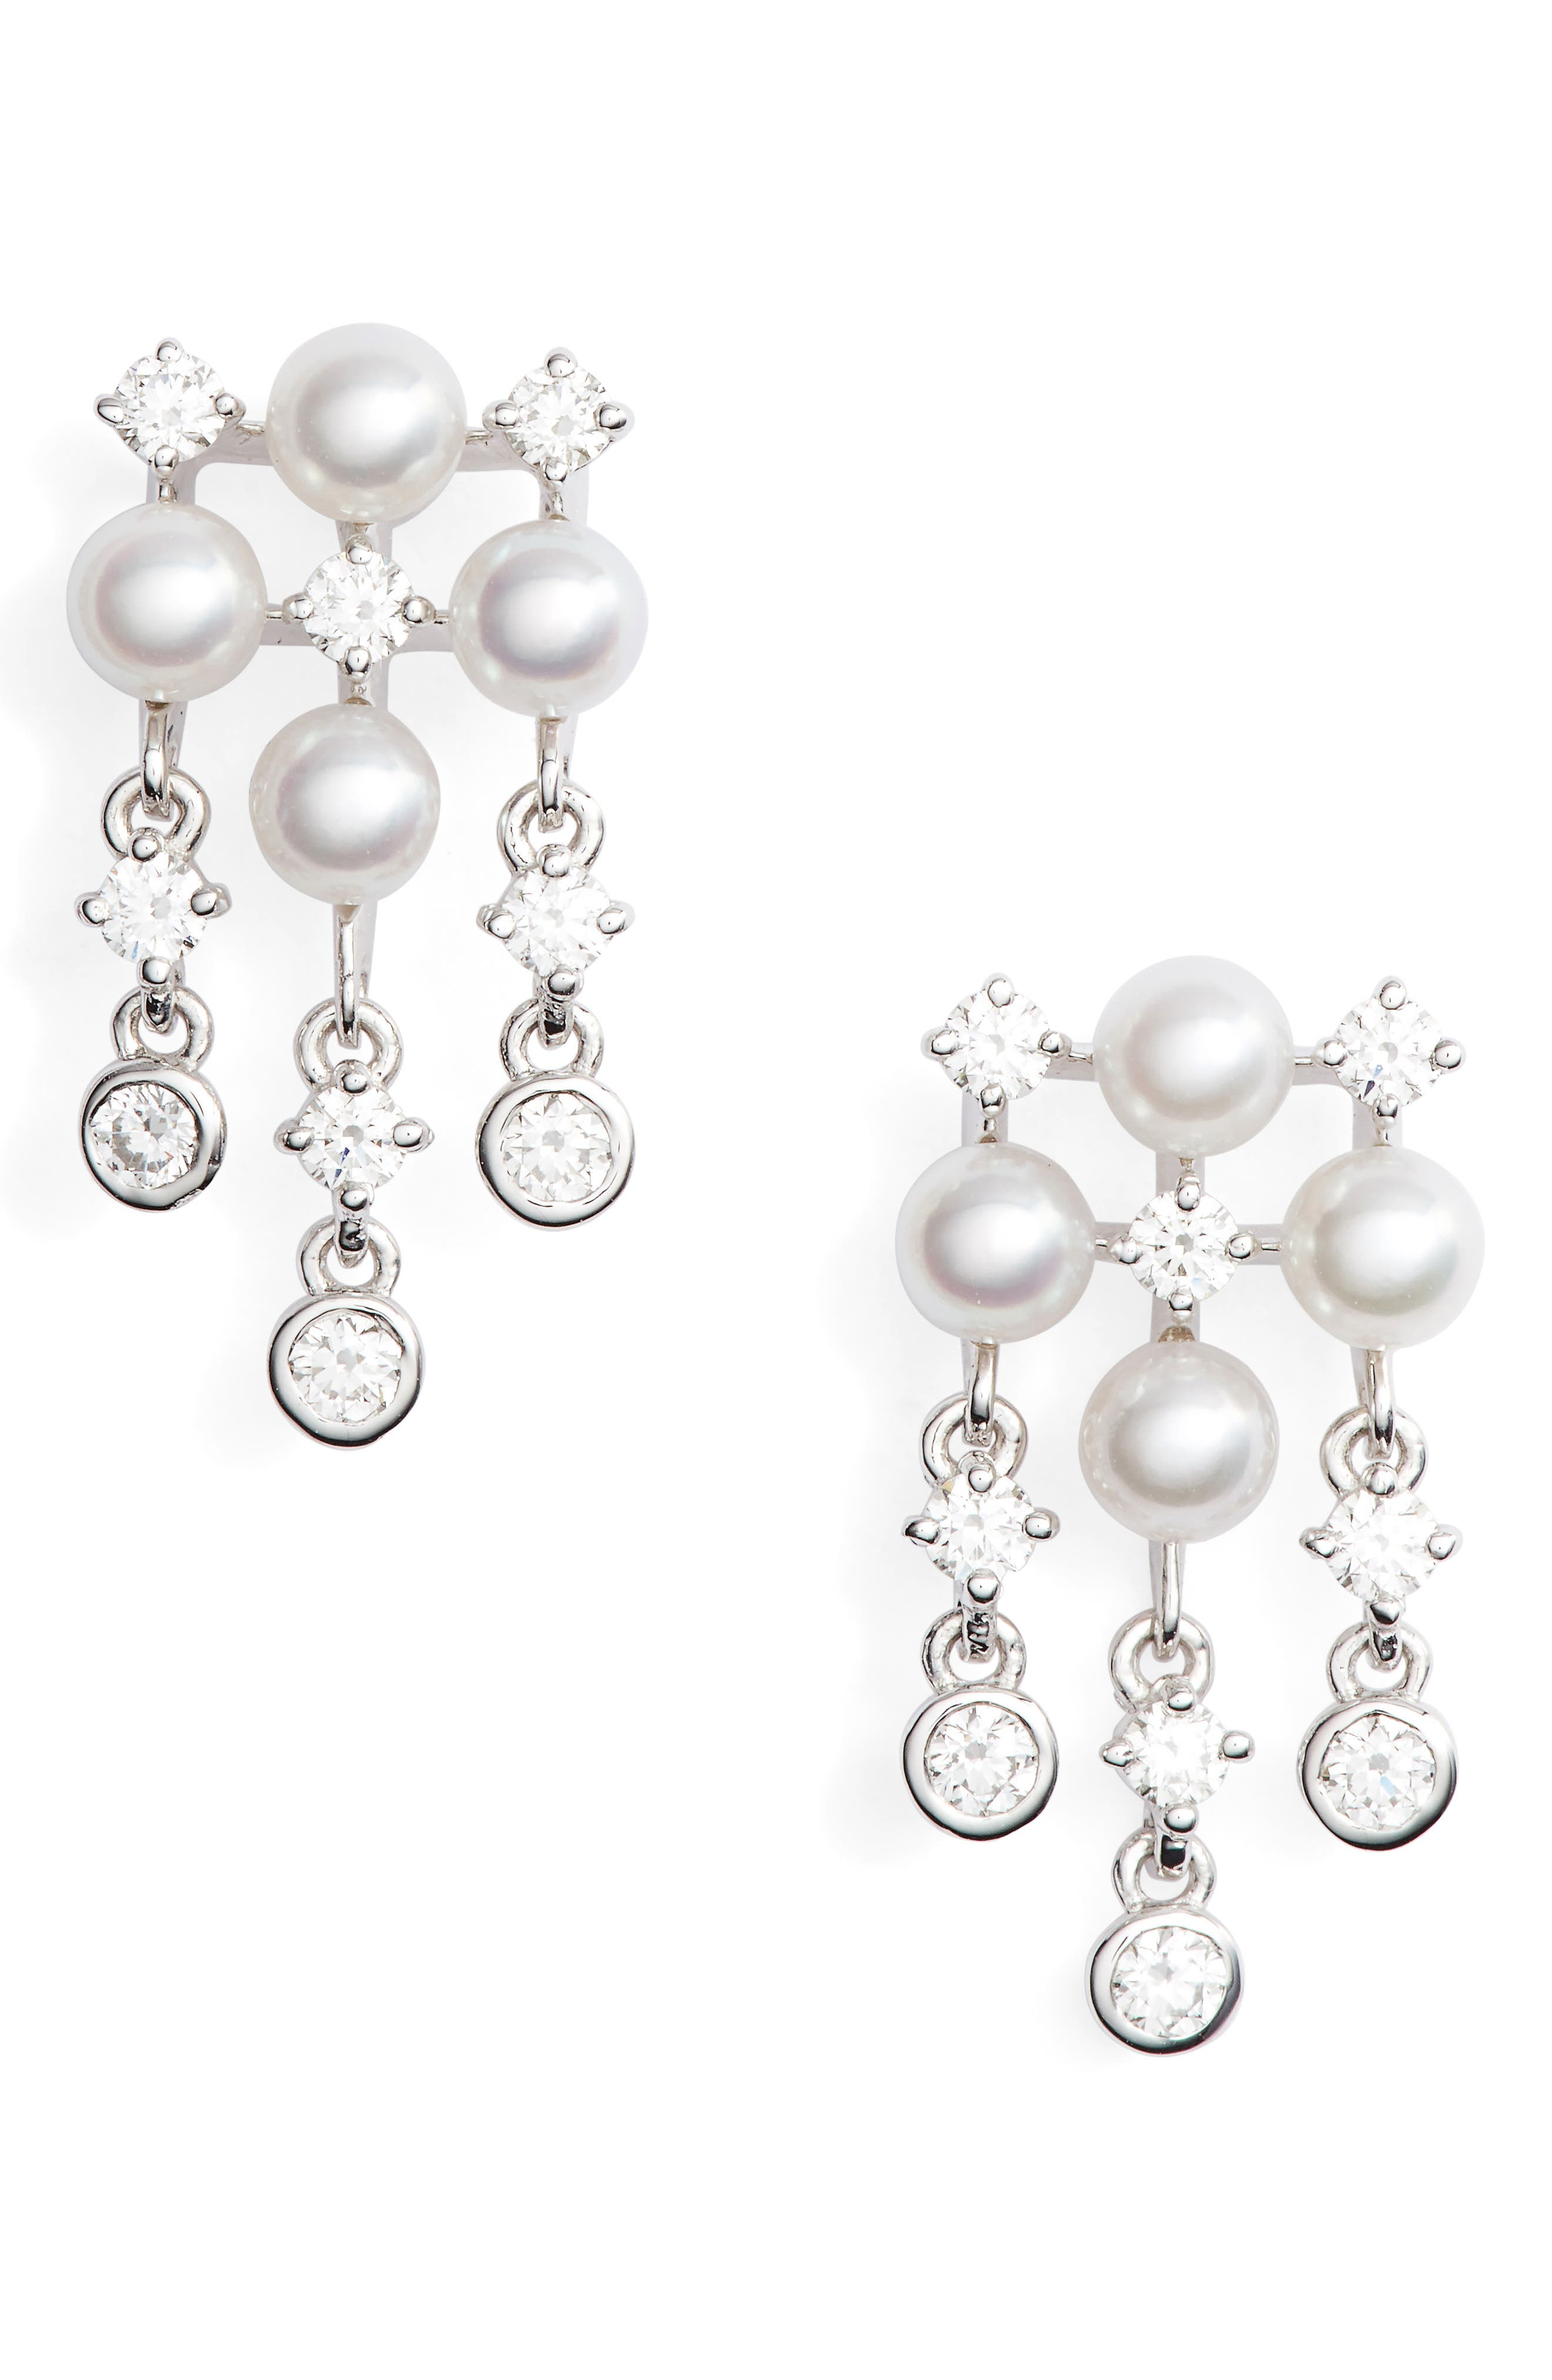 Akoya Cultured Pearl & Diamond Earrings,                             Main thumbnail 1, color,                             WHITE GOLD